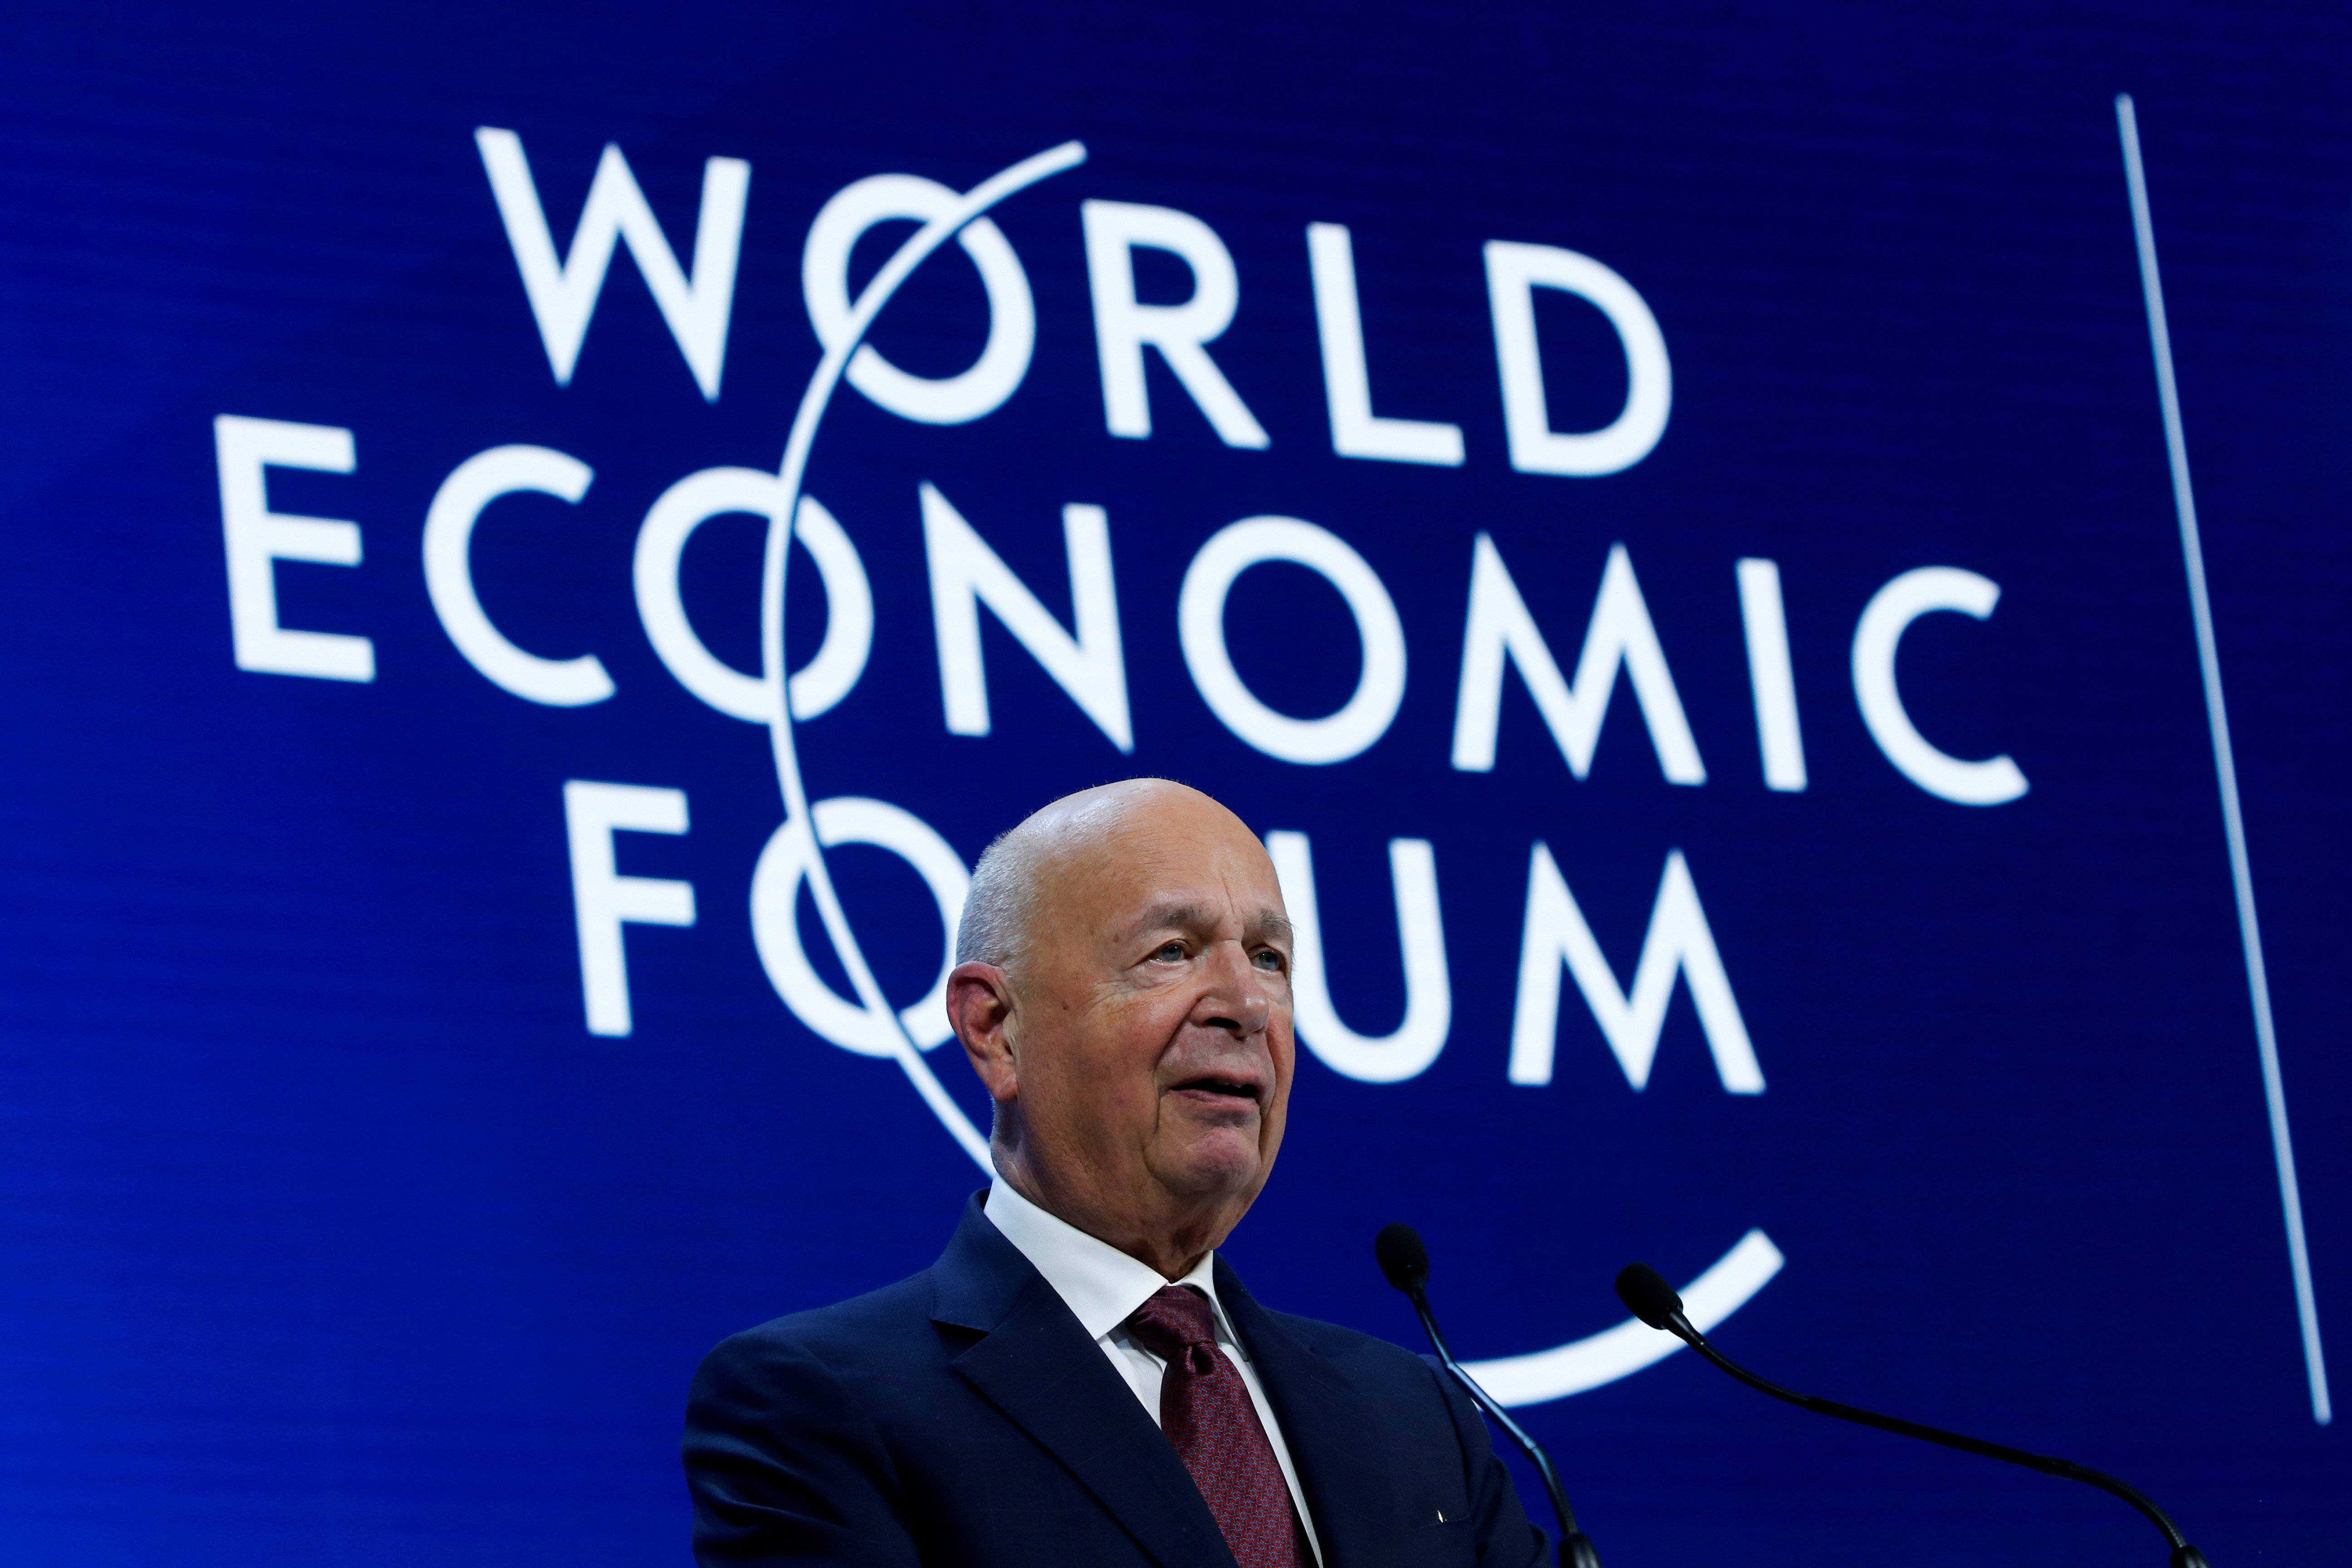 World Economic Forum Founder and Executive Chairman Klaus Schwab calls for a new kind of capitalism